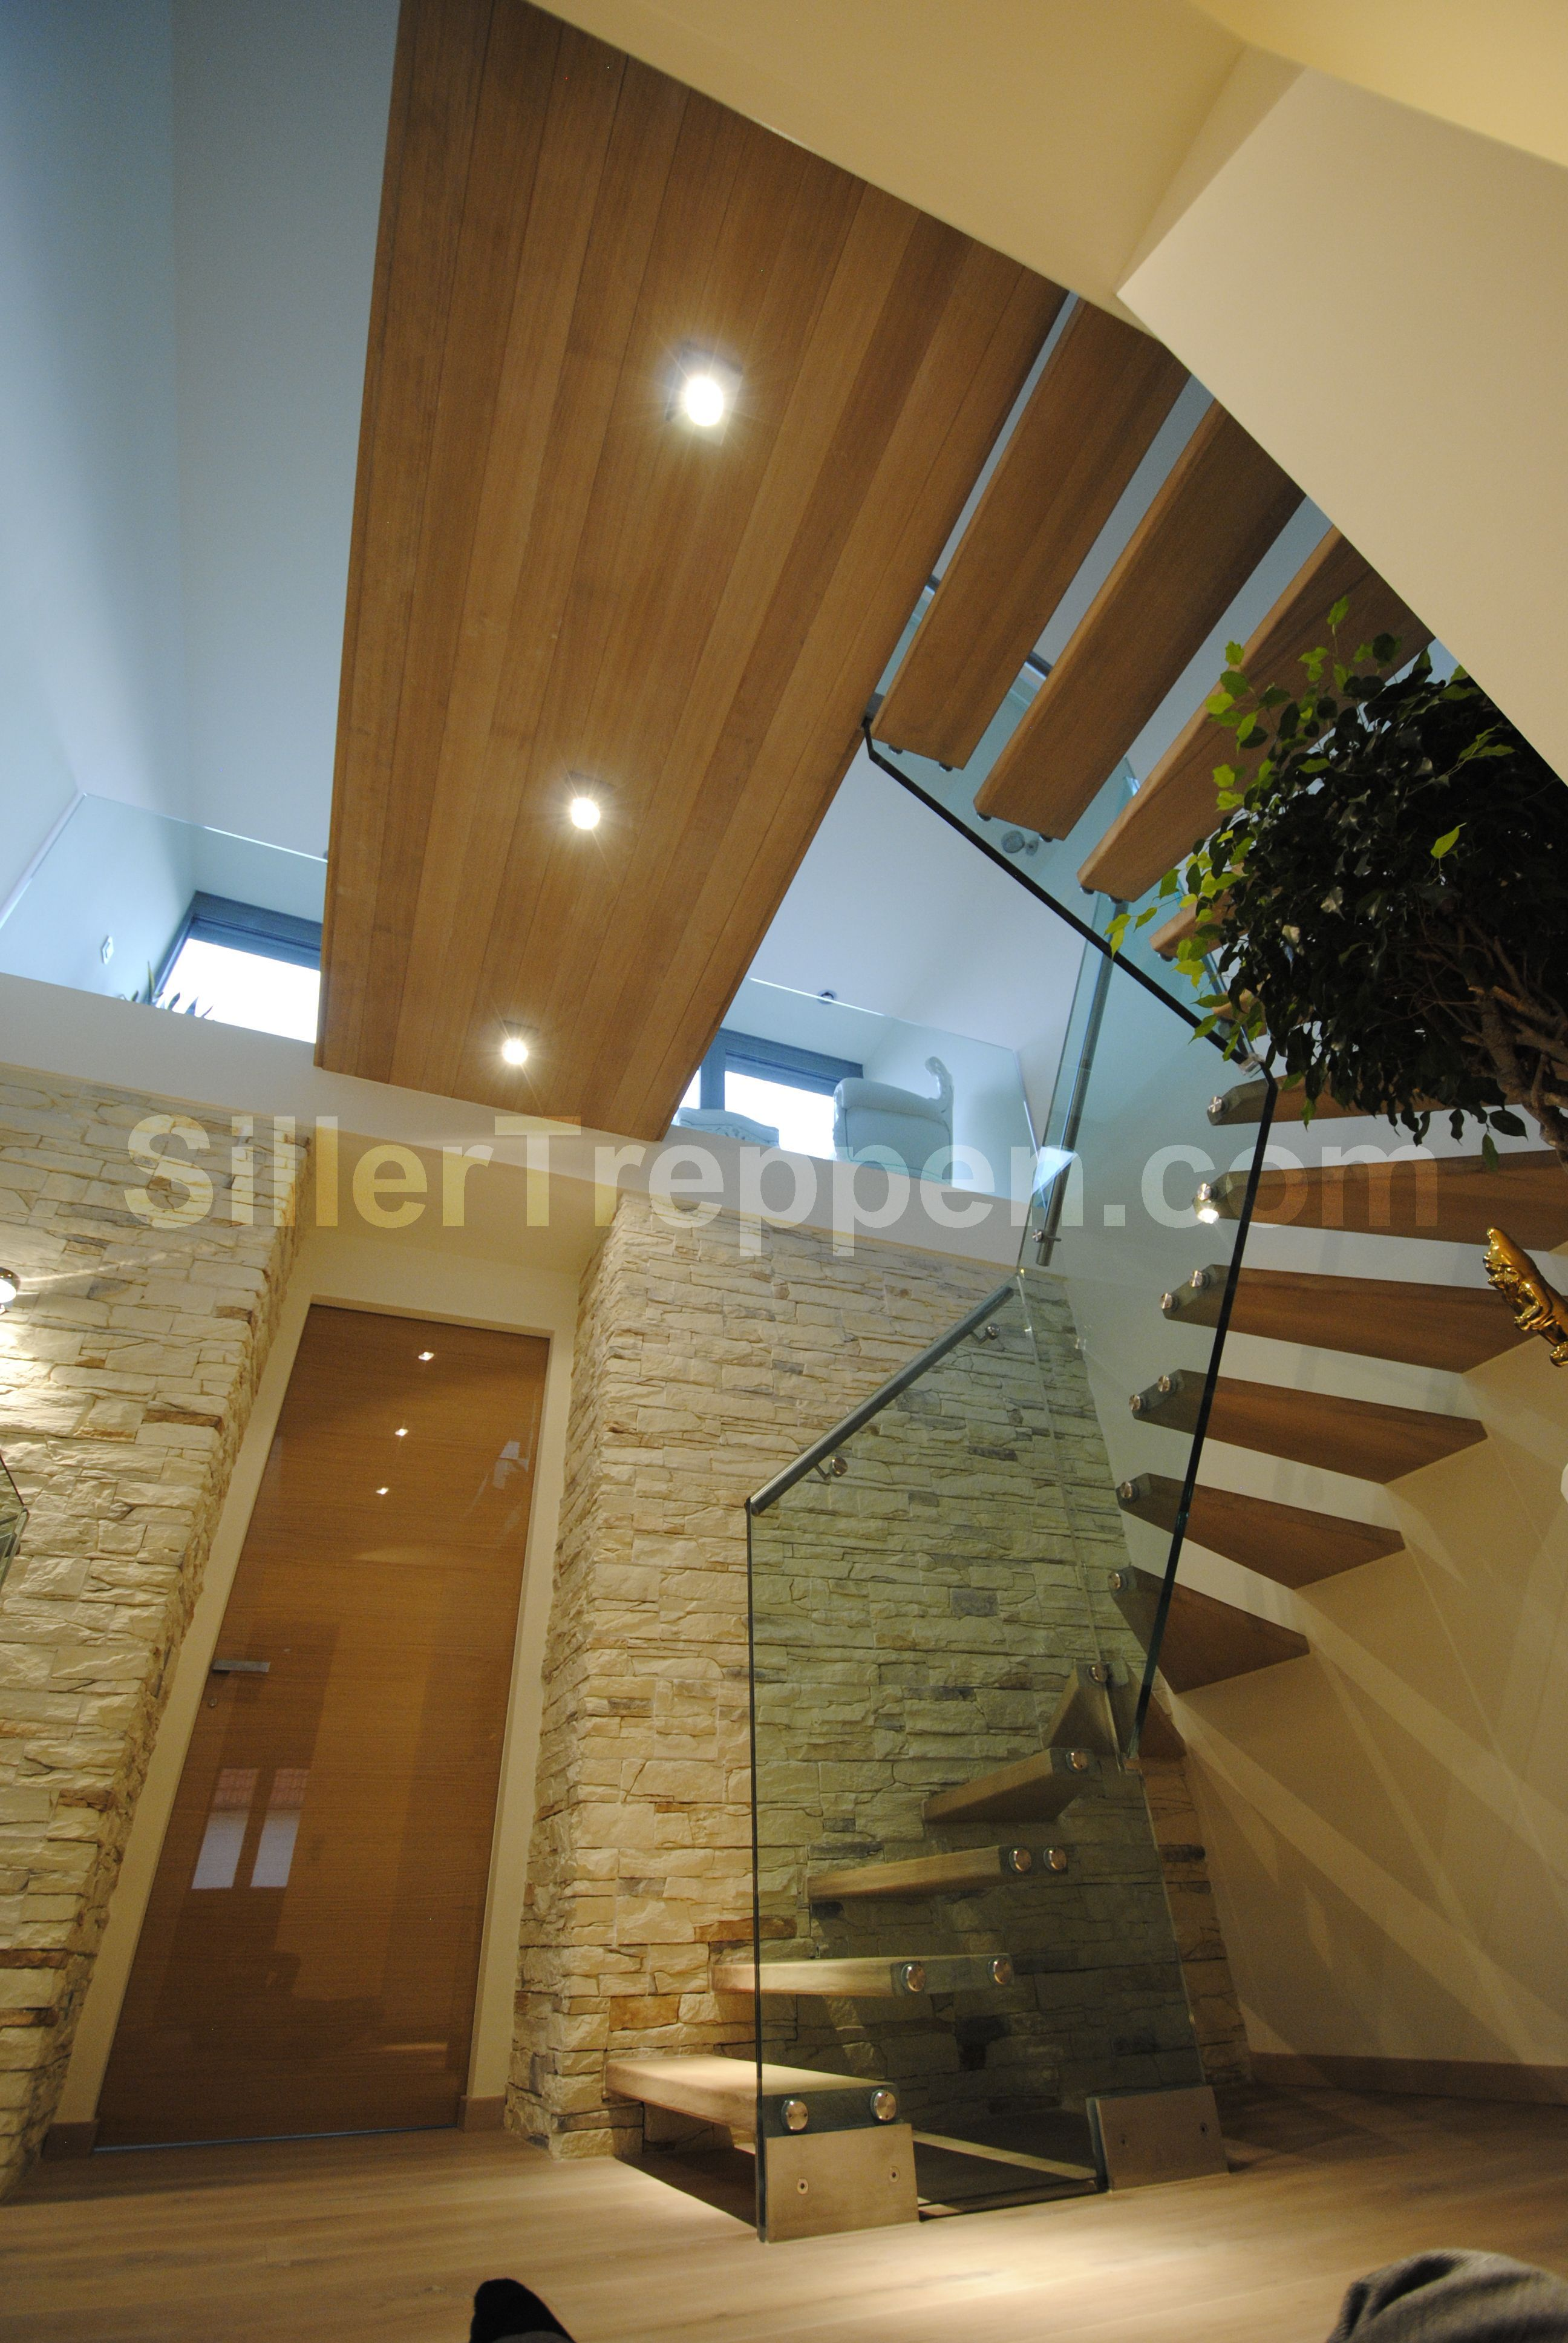 floating staircase, winder staircase, structural glass stairs, modern stairs, custom stairs http://www.sillertreppen.com/en/stairs-modern/